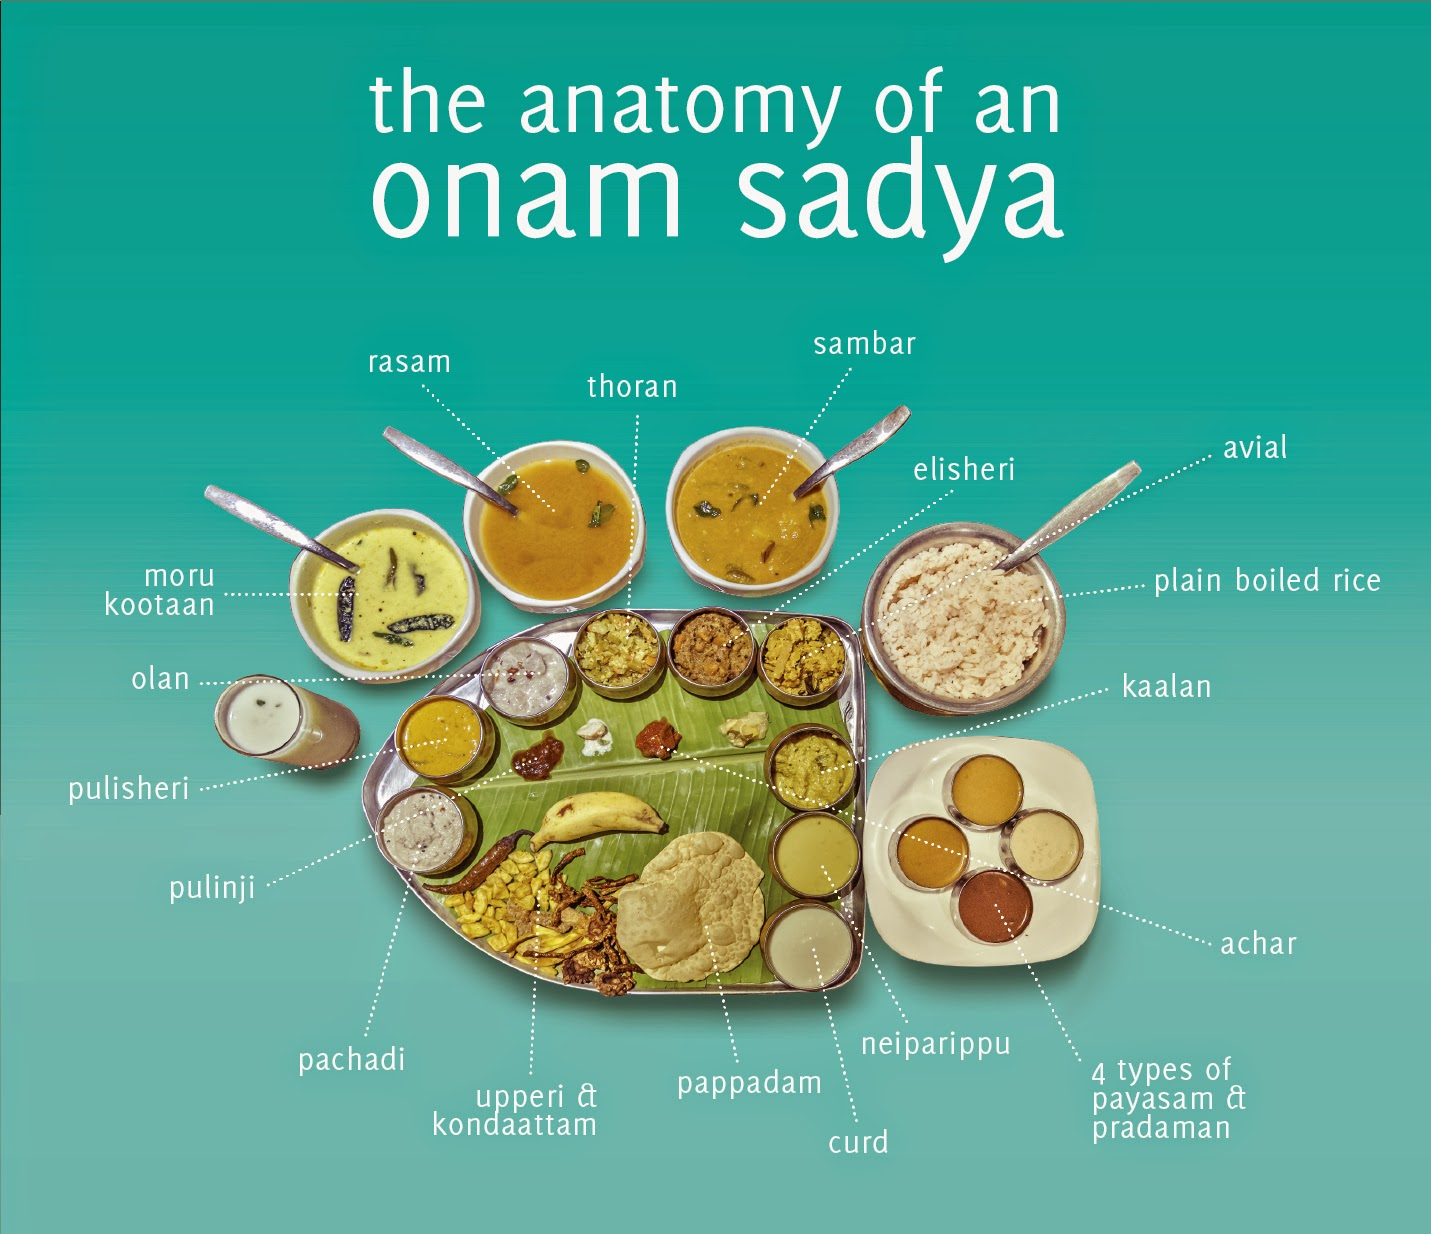 where to serve onam dishes images